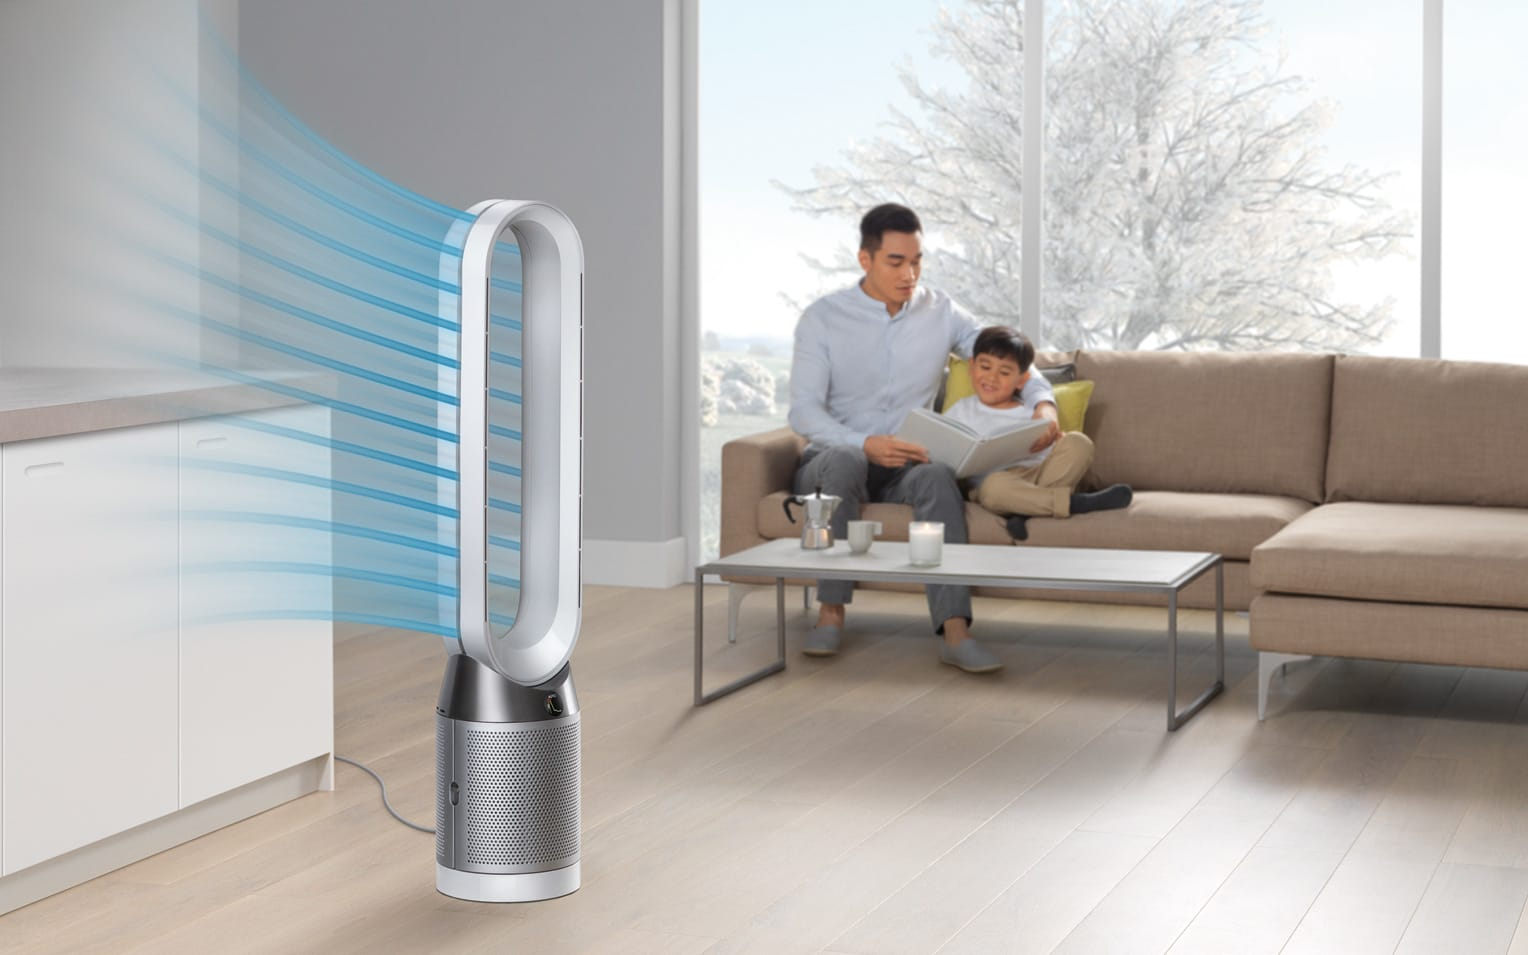 Fan That Blows Cold Air >> Dyson S Latest Fans Can Purify Air Without Blowing At You